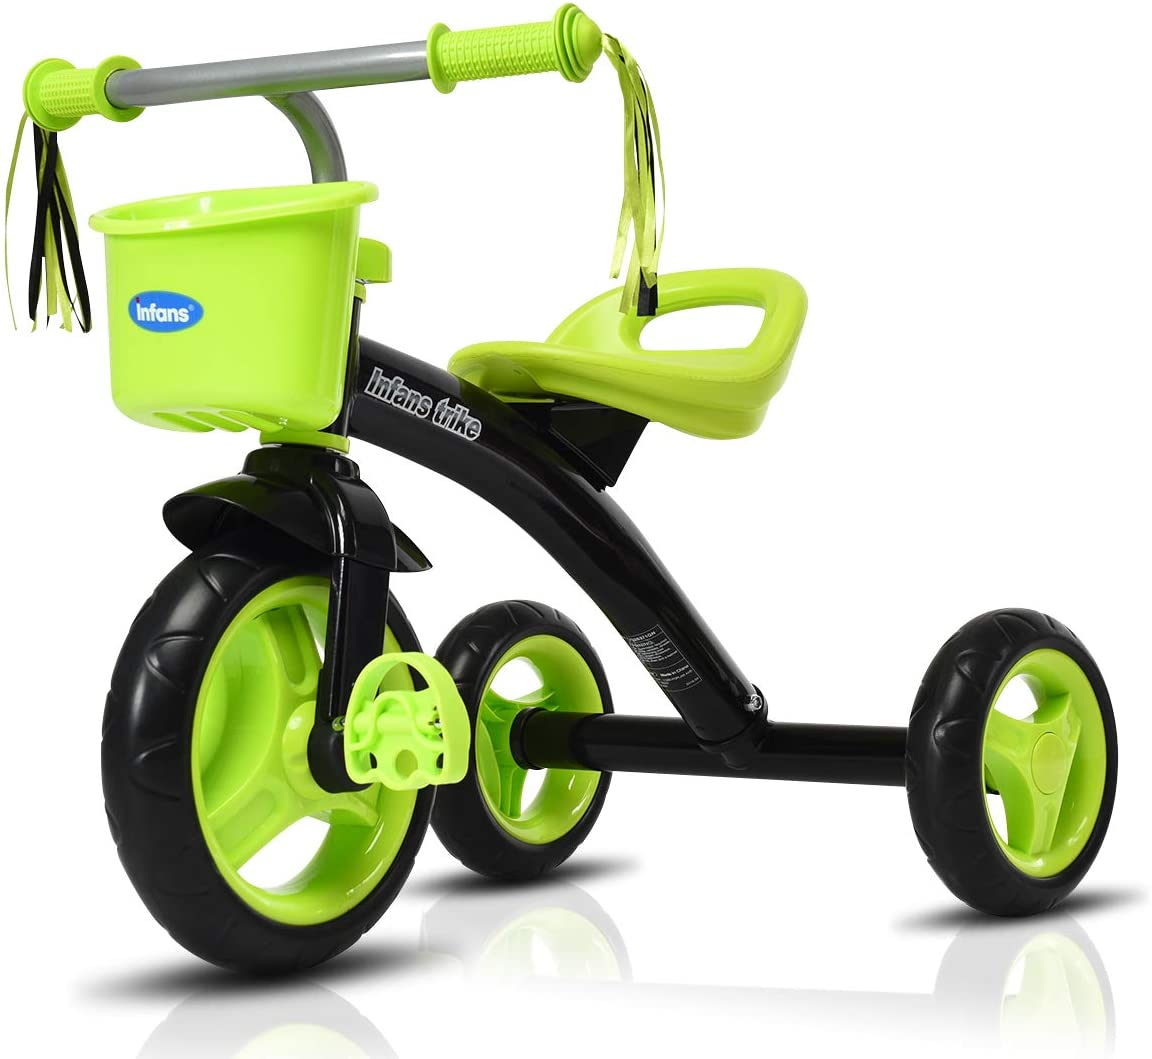 INFANS Lightweight Tricycle for Toddler & Children Age 2-5 Years, Kids 3 Wheels Pedal Trick with Inflation-Free Tires, Storage Basket, Adjustable Handlebar & Seat, Steel Frame, Quick Assembly